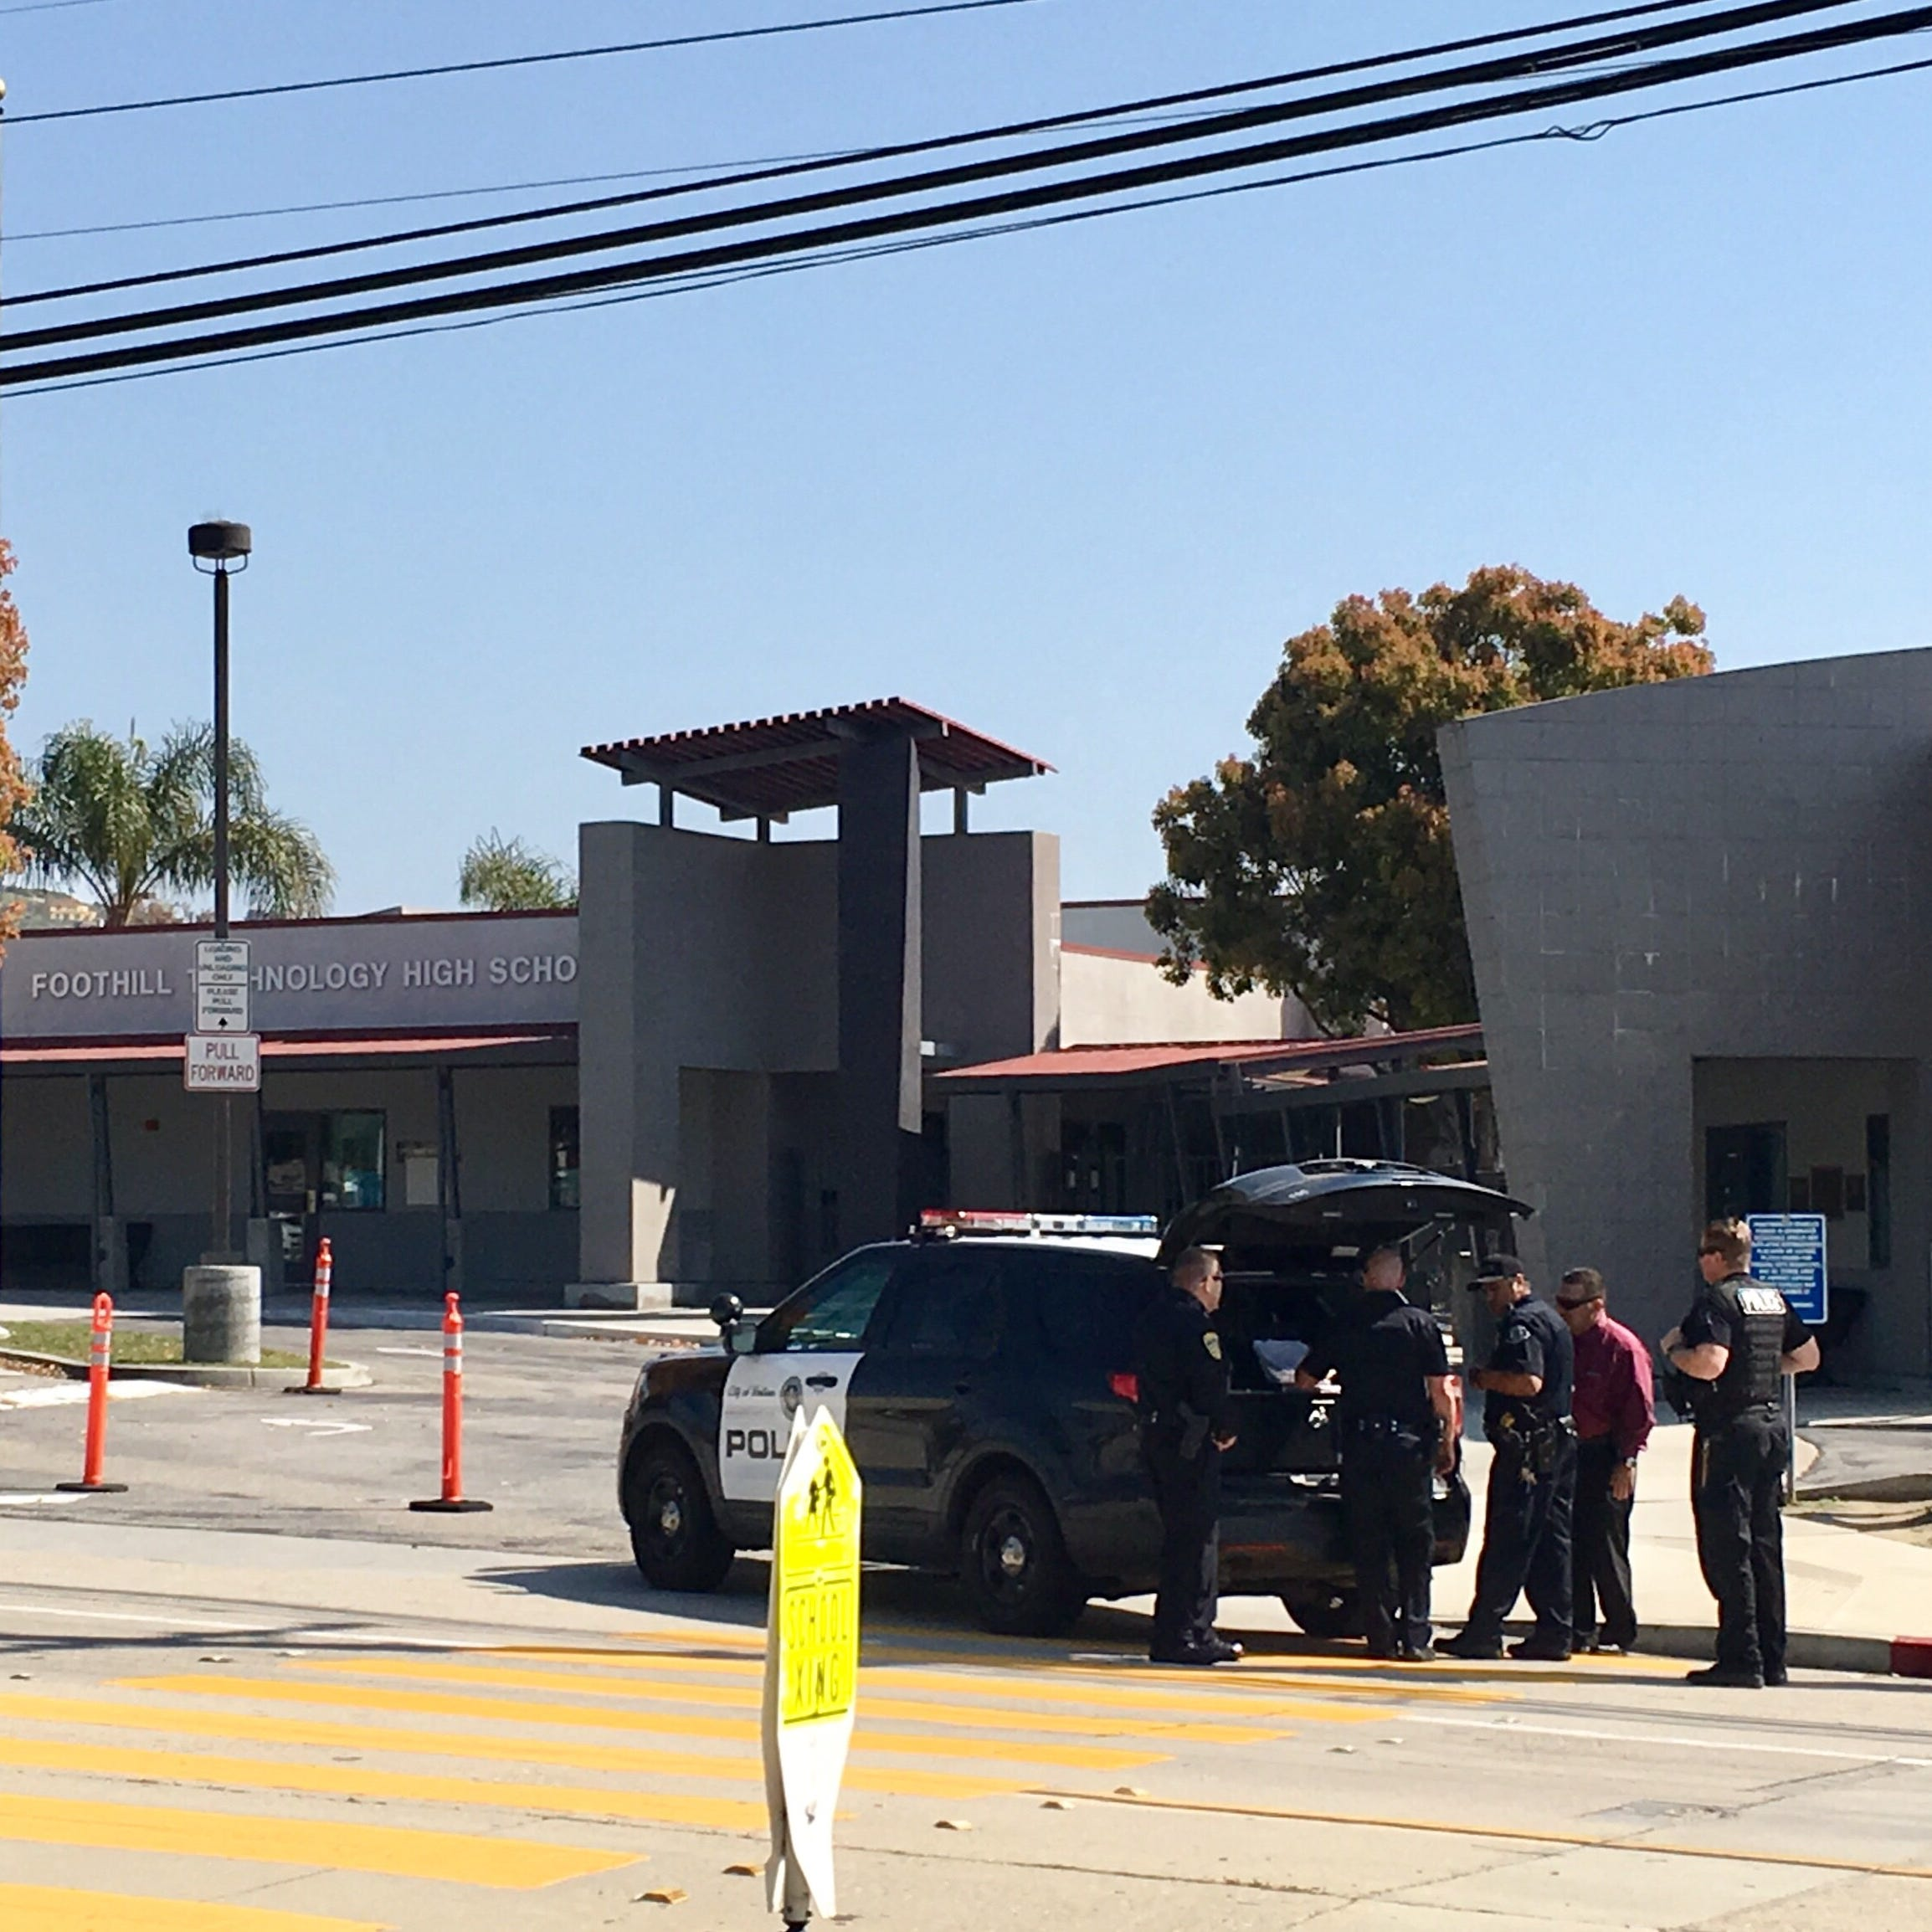 Ventura police investigate 'very vague' bomb threat Foothill Tech High; no threat found